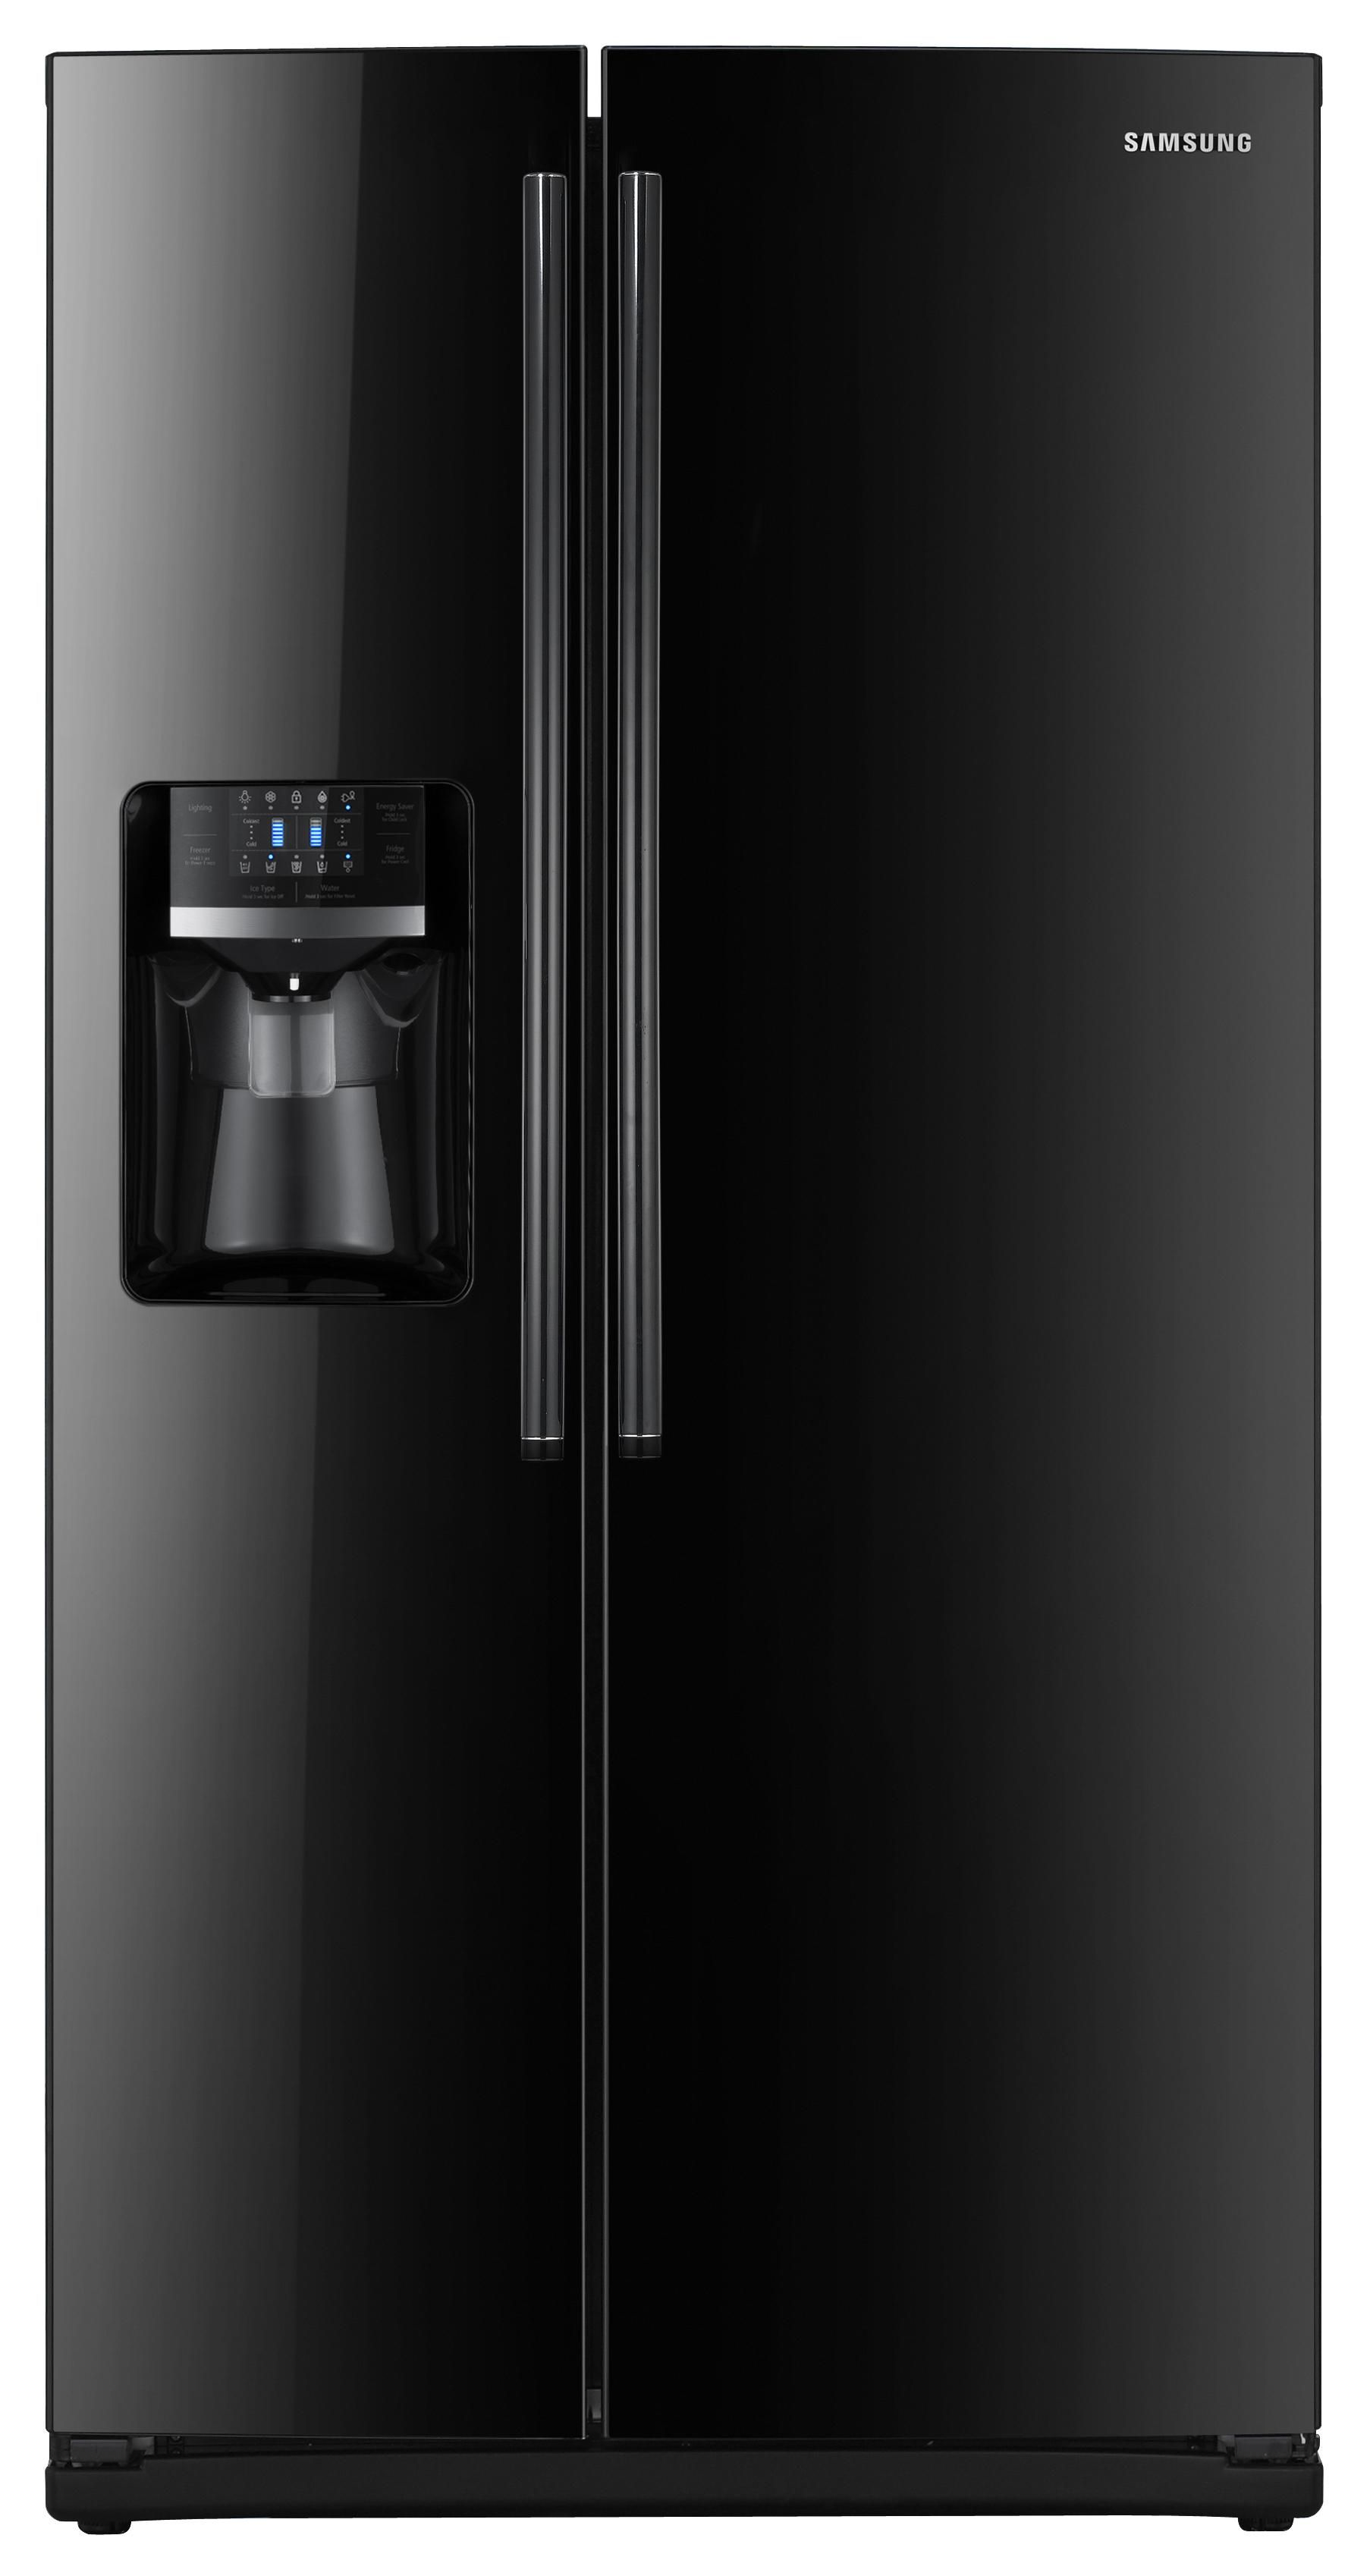 cu ft sidebyside refrigerator by samsung appliances is energy